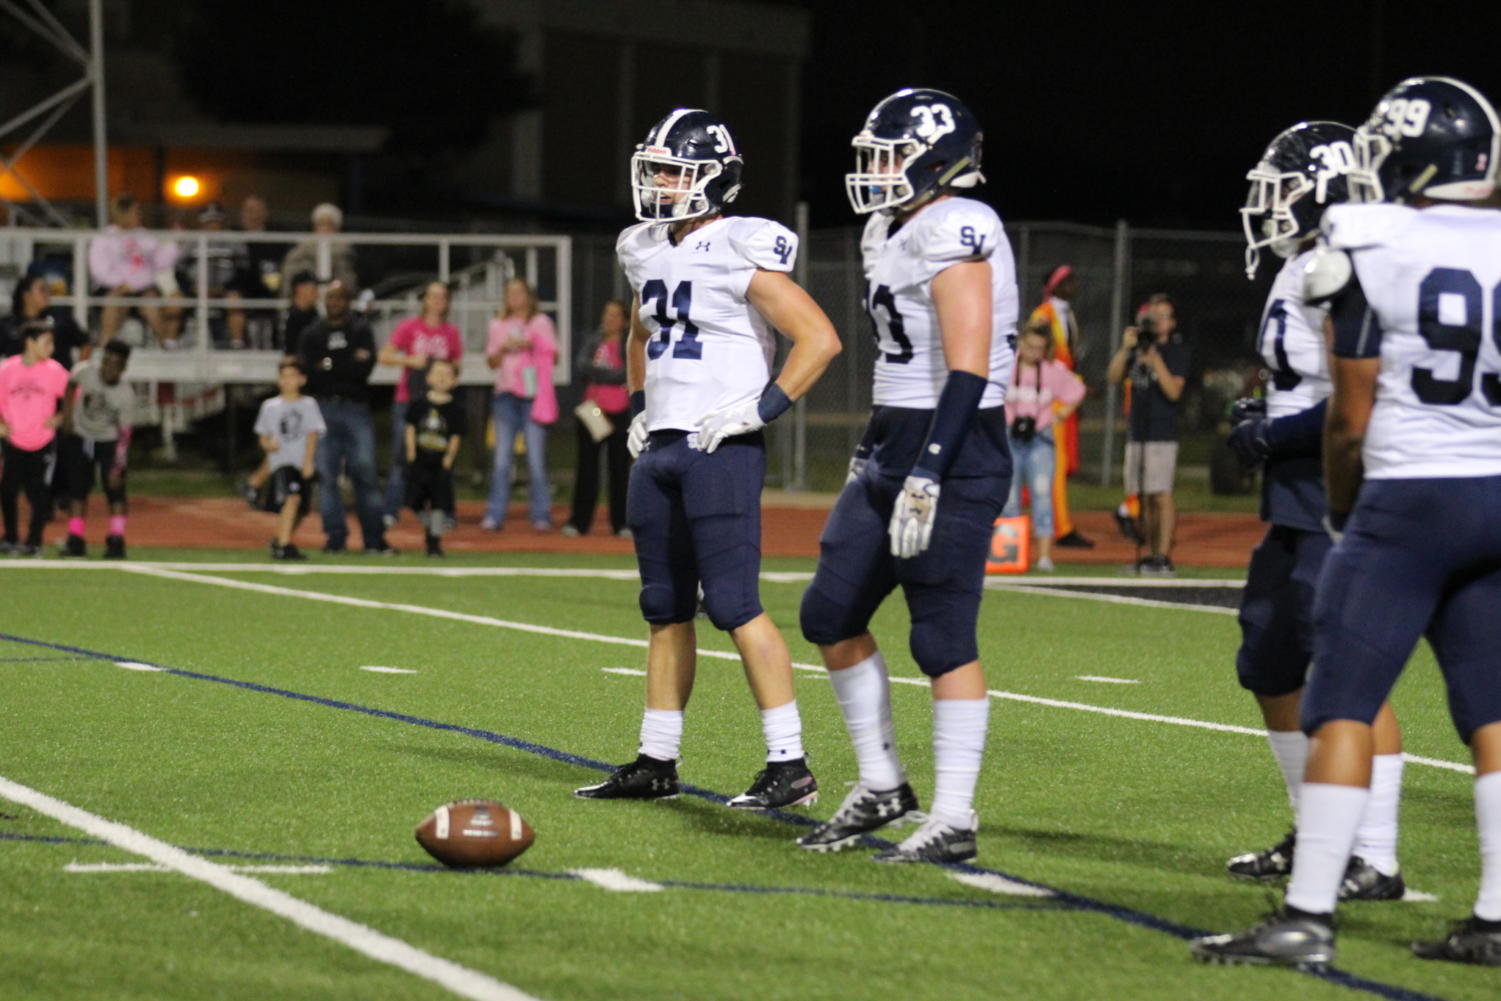 The Smithson Valley booster club has helped fund a bus to carry fans to Austin for this weeks upcoming playoff matchup against Lake Travis. The team will be selling tickets Friday morning along with clear bags to bring into the stadium.